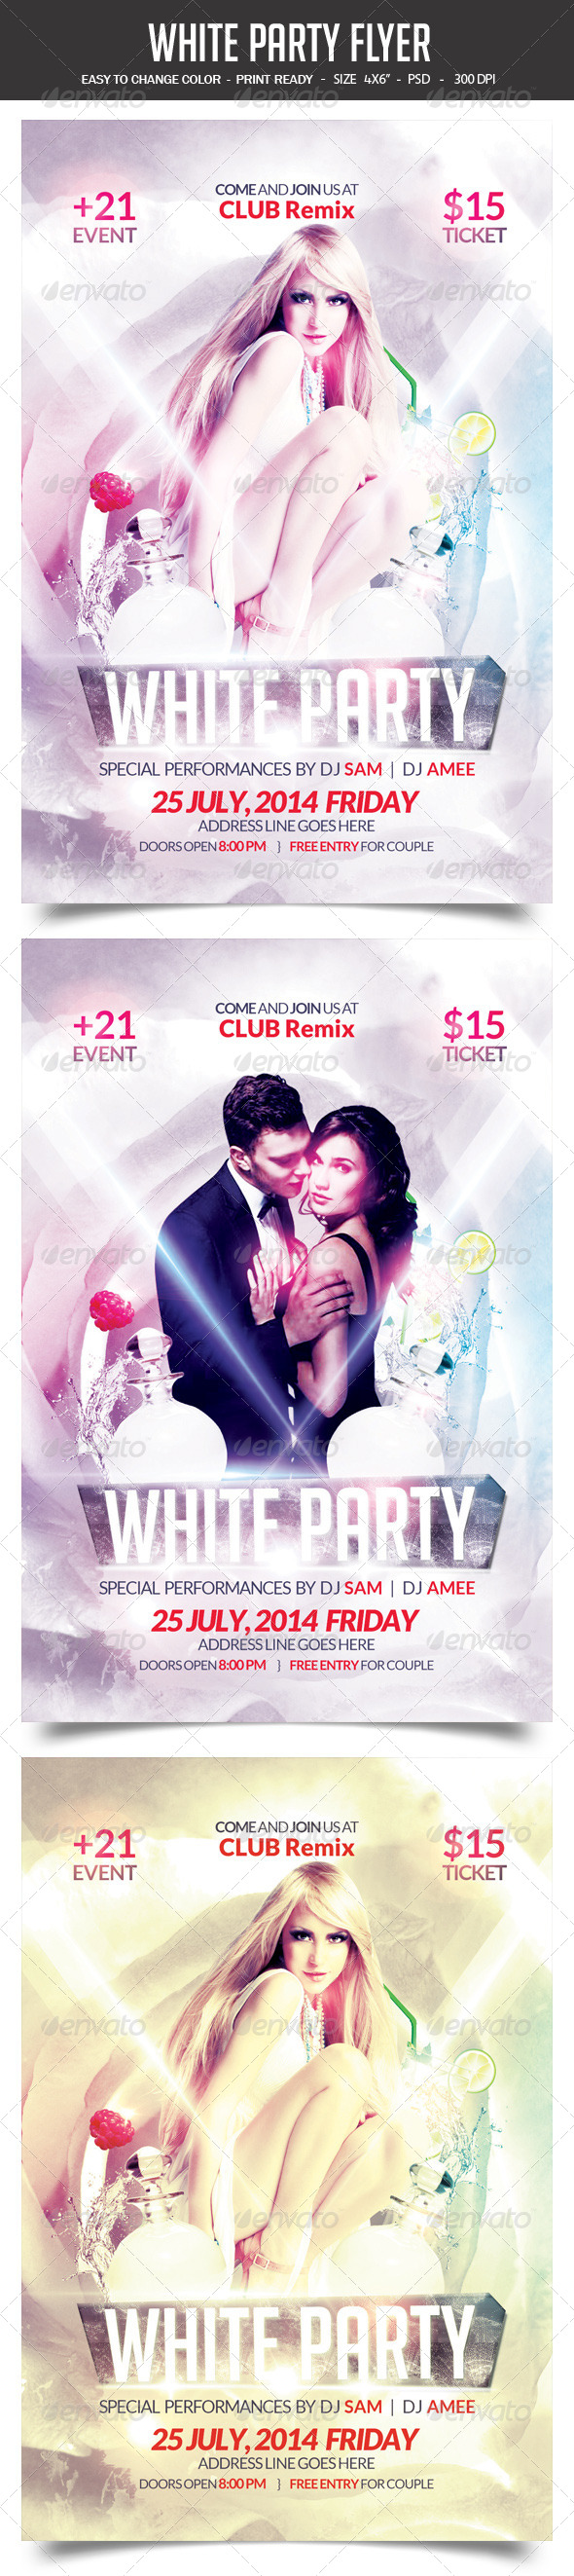 GraphicRiver White Party Flyer 8240624